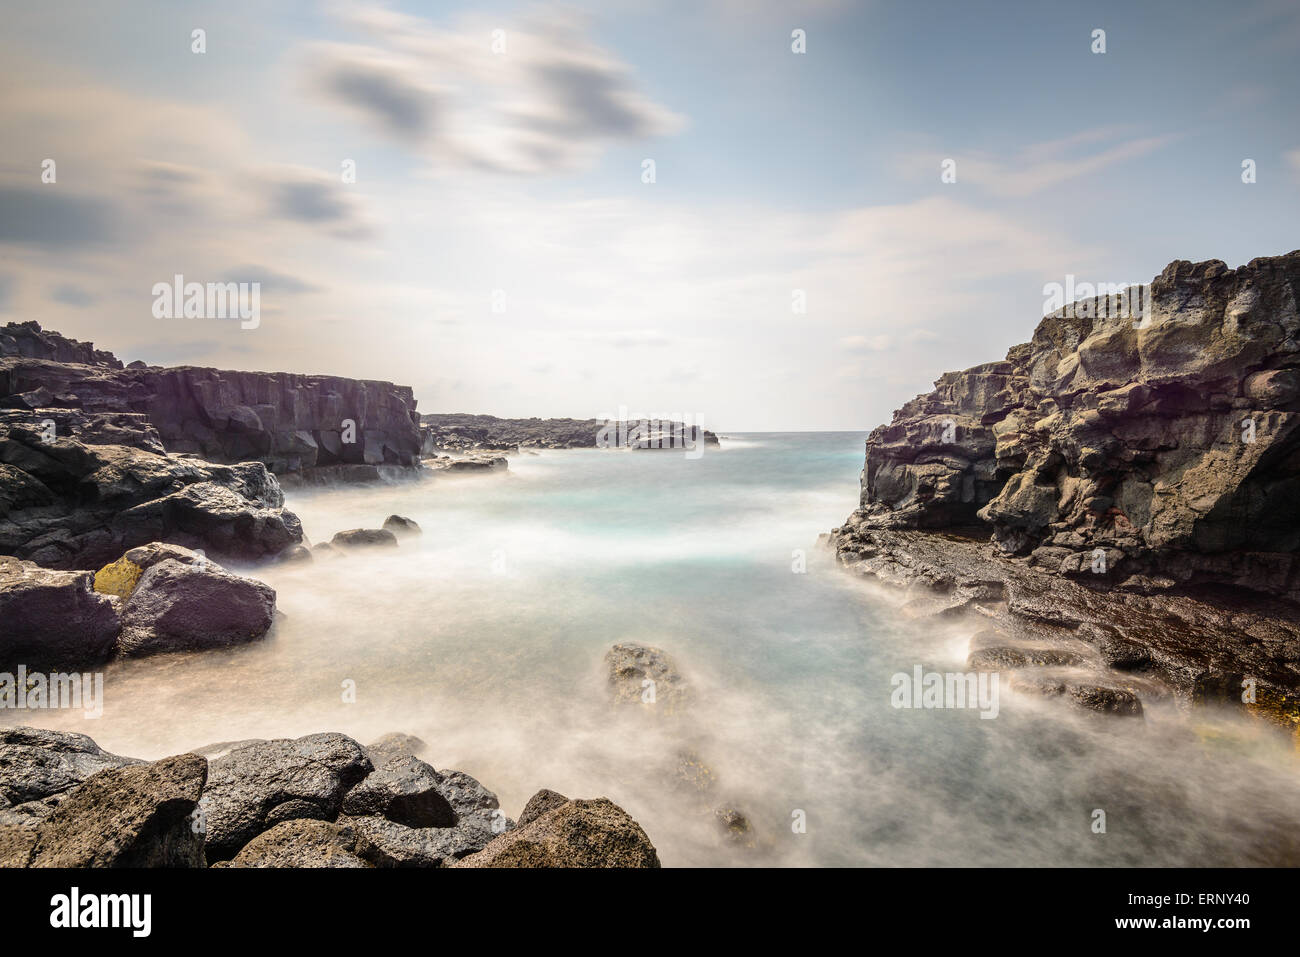 Hachijojima, Japan coast. - Stock Image